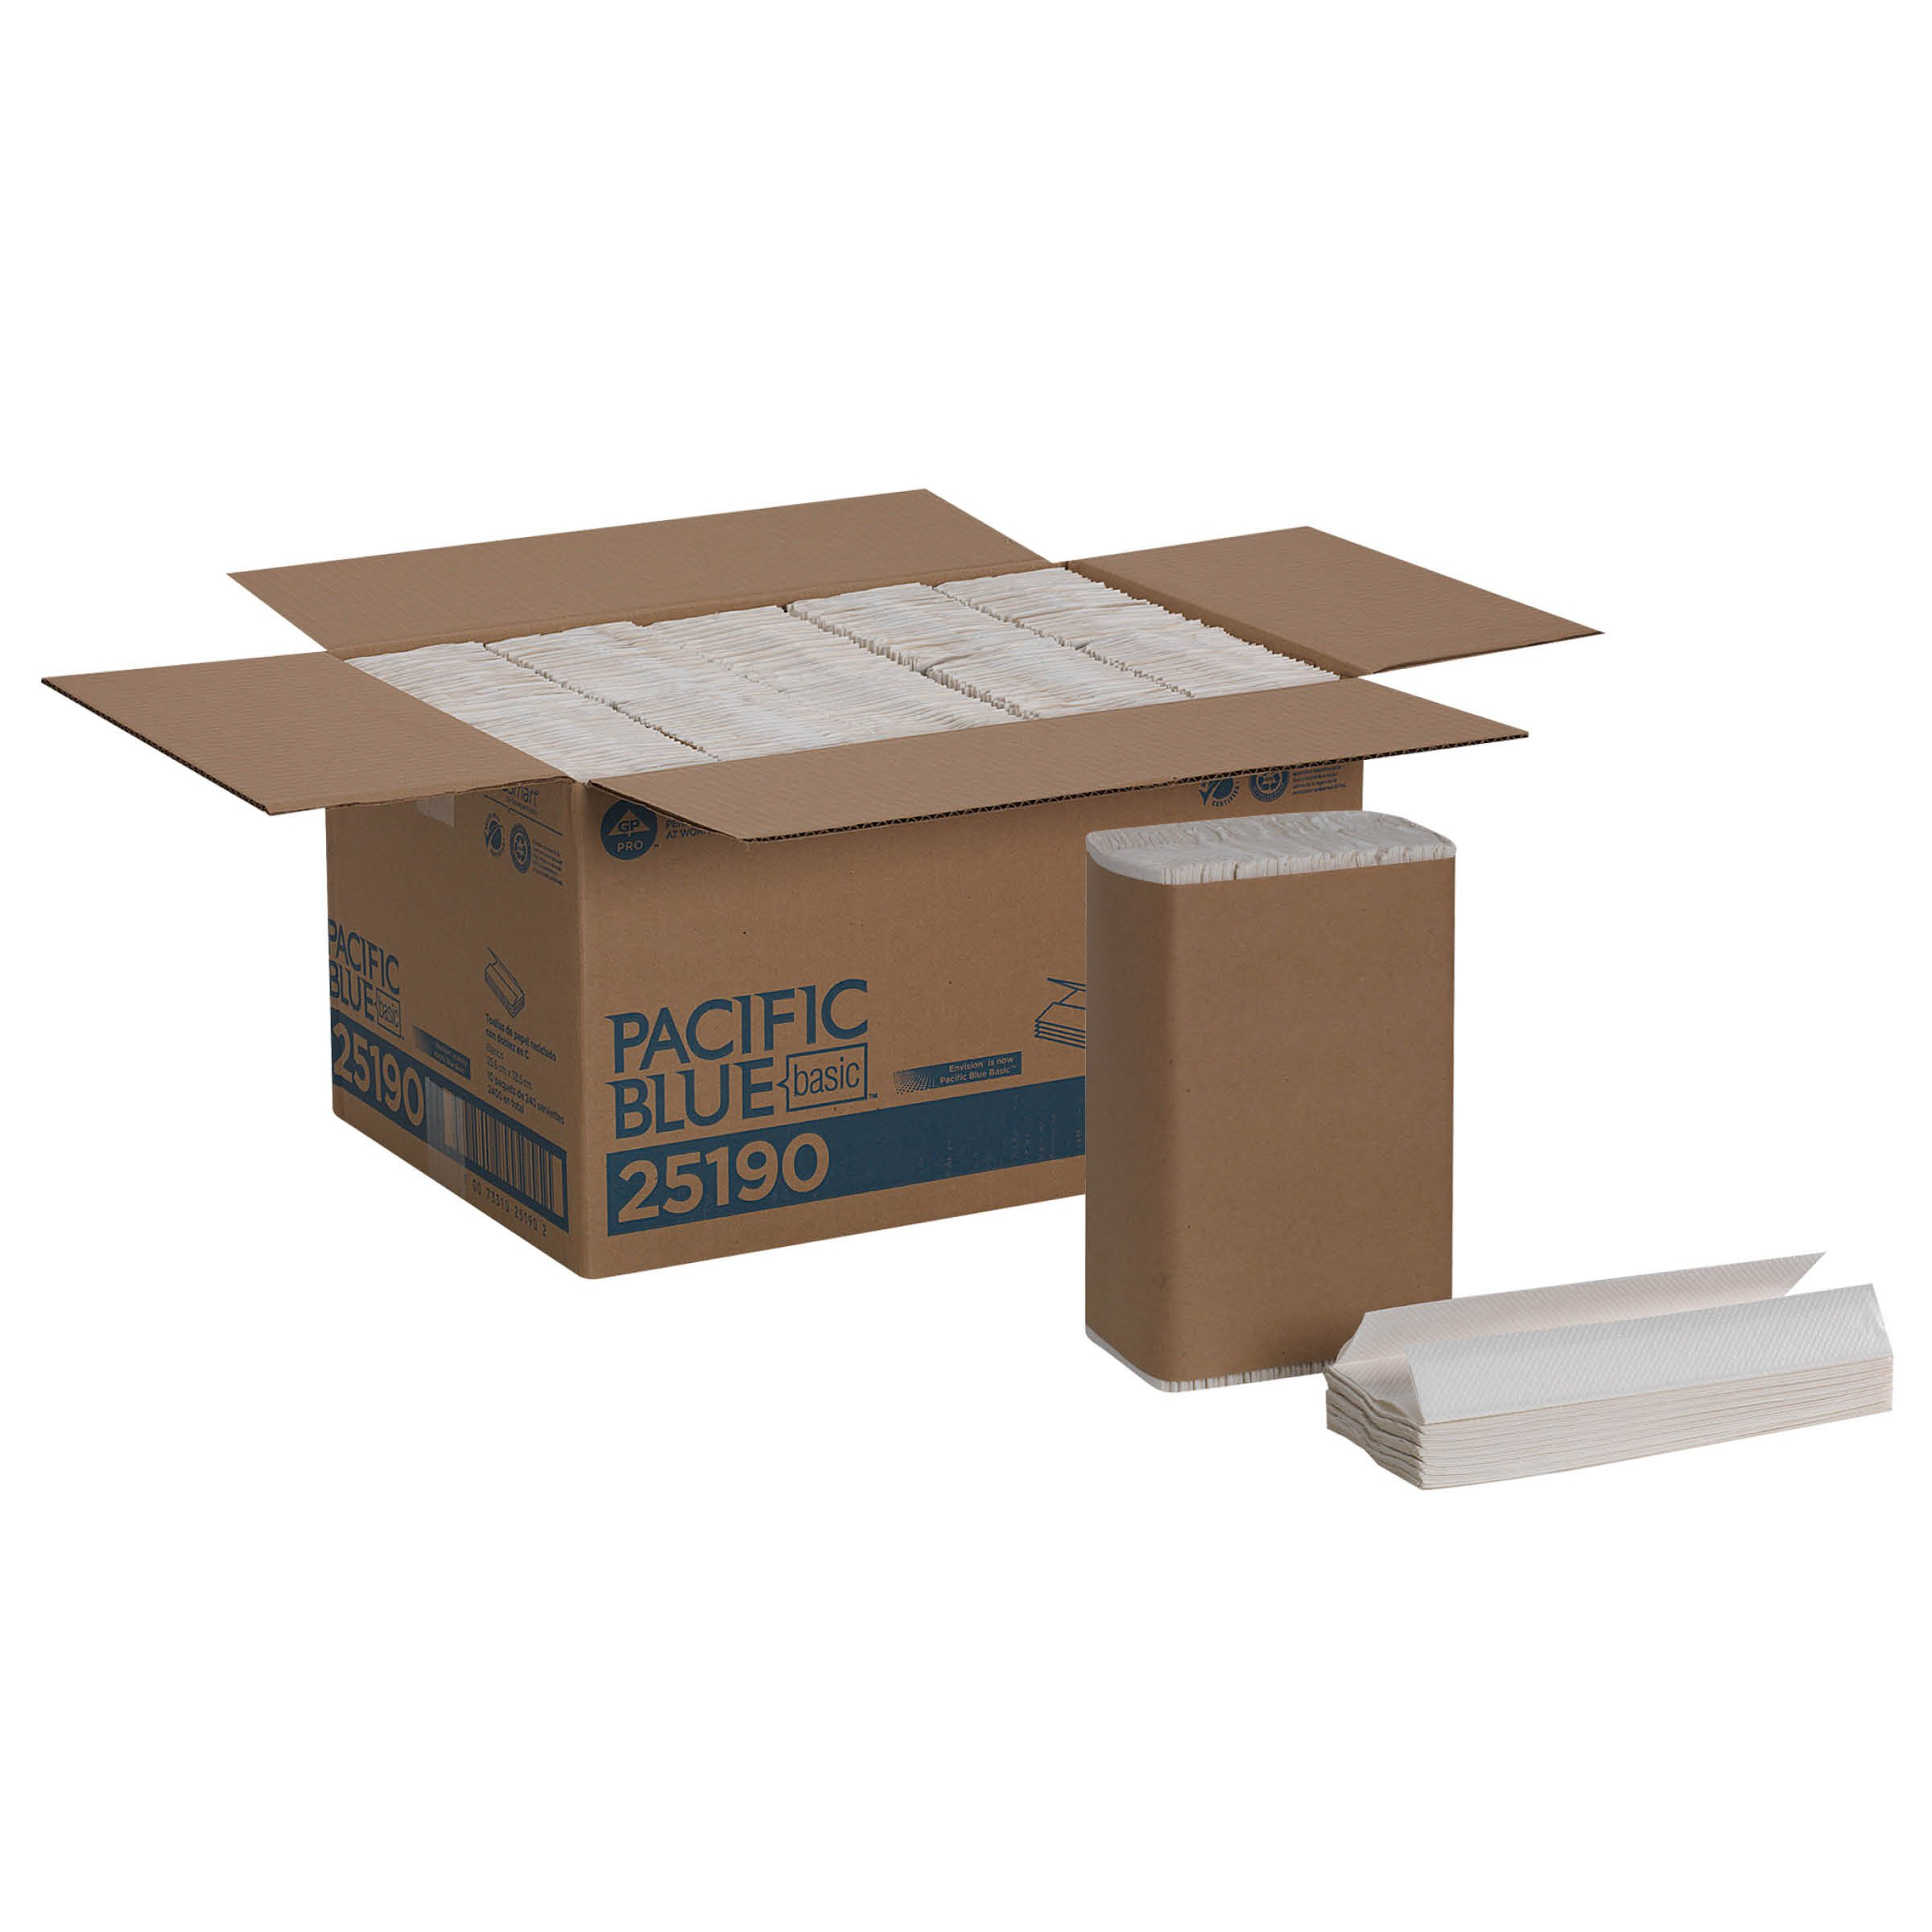 Pacific Blue Basic C-Fold Recycled Paper Towels (previously branded Envision) by GP PRO (Georgia-Pacific), White, 25190, 240 Towels Per Pack, 10 Packs Per Case